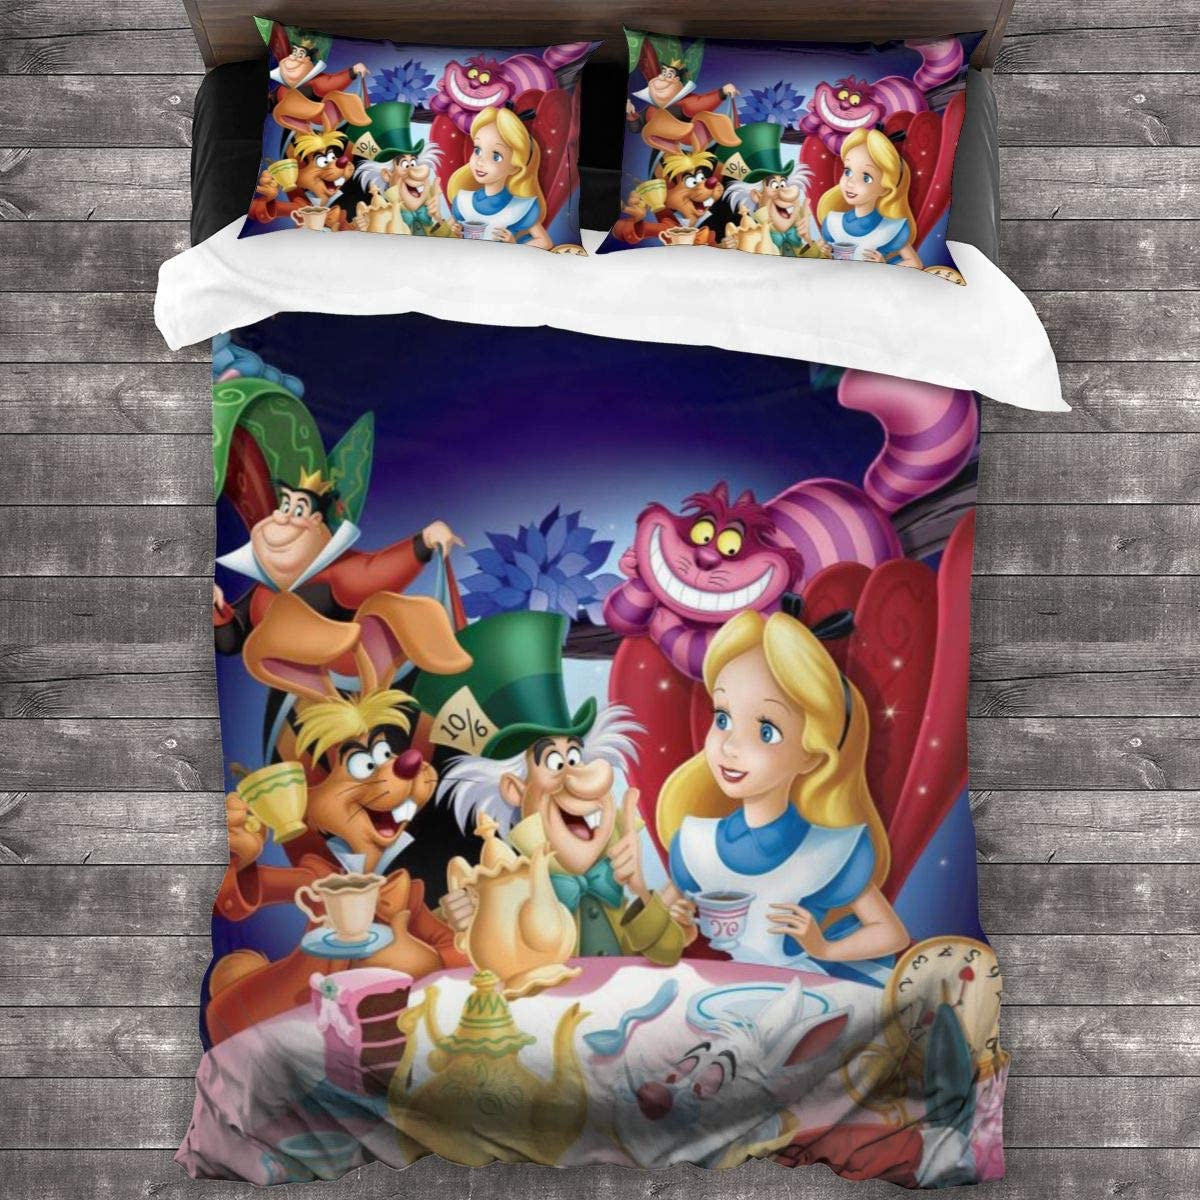 GUOZX Colorful Alice in Wonderland 3 Piece Bedding Sets, with 1 Quilt Cover+2 Pillow Shams, Twin Size - 86¡±x70